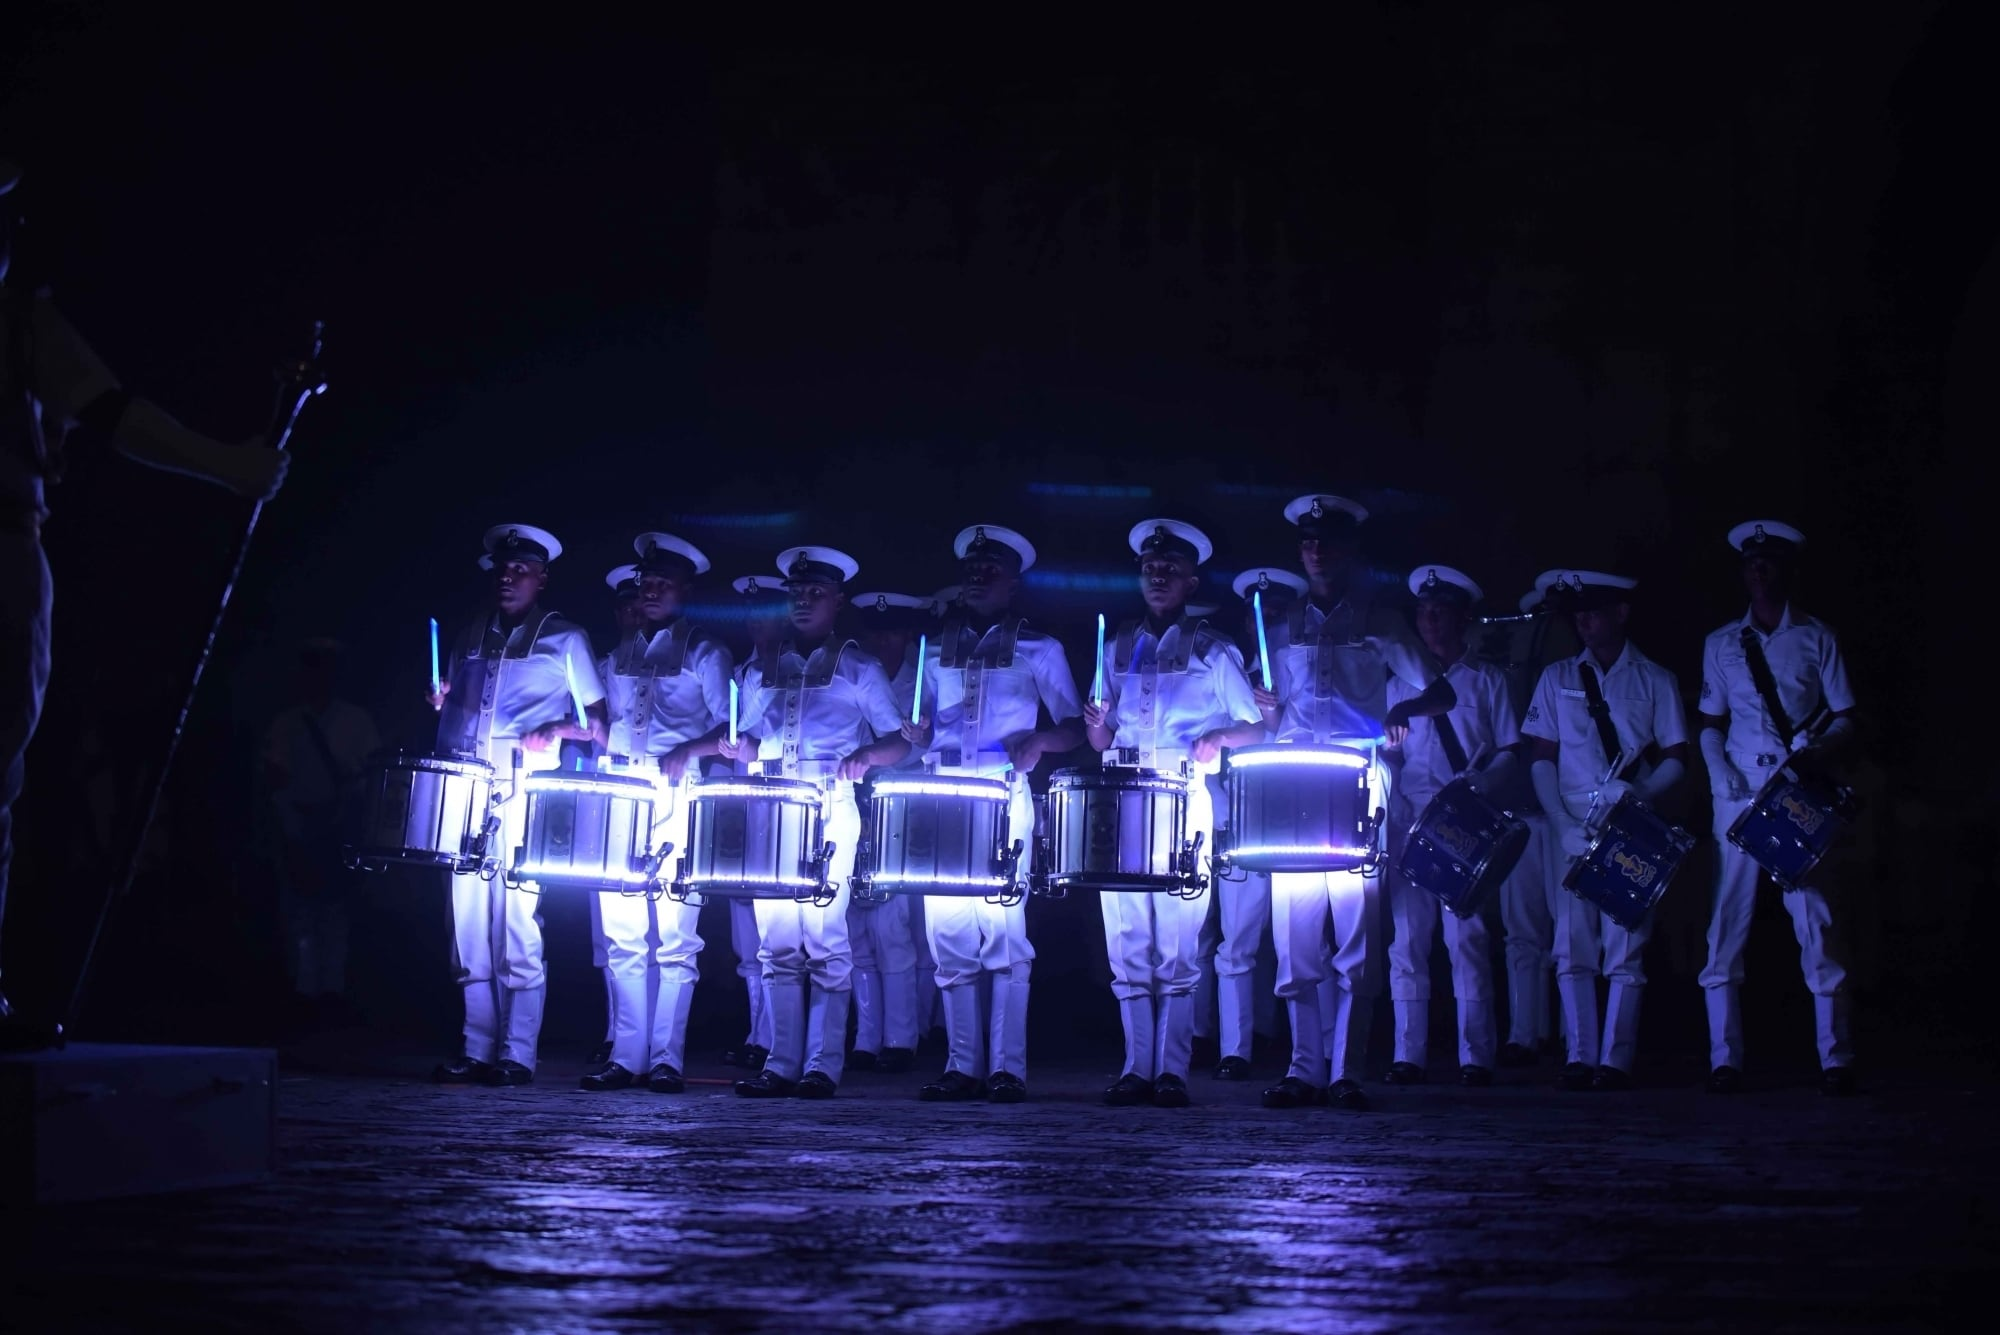 Navy personnel rehearse for the Beating Retreat ceremony ahead of Navy Day at The  Gateway of India in Mumbai on December 3, 2018. (Photo: IANS)